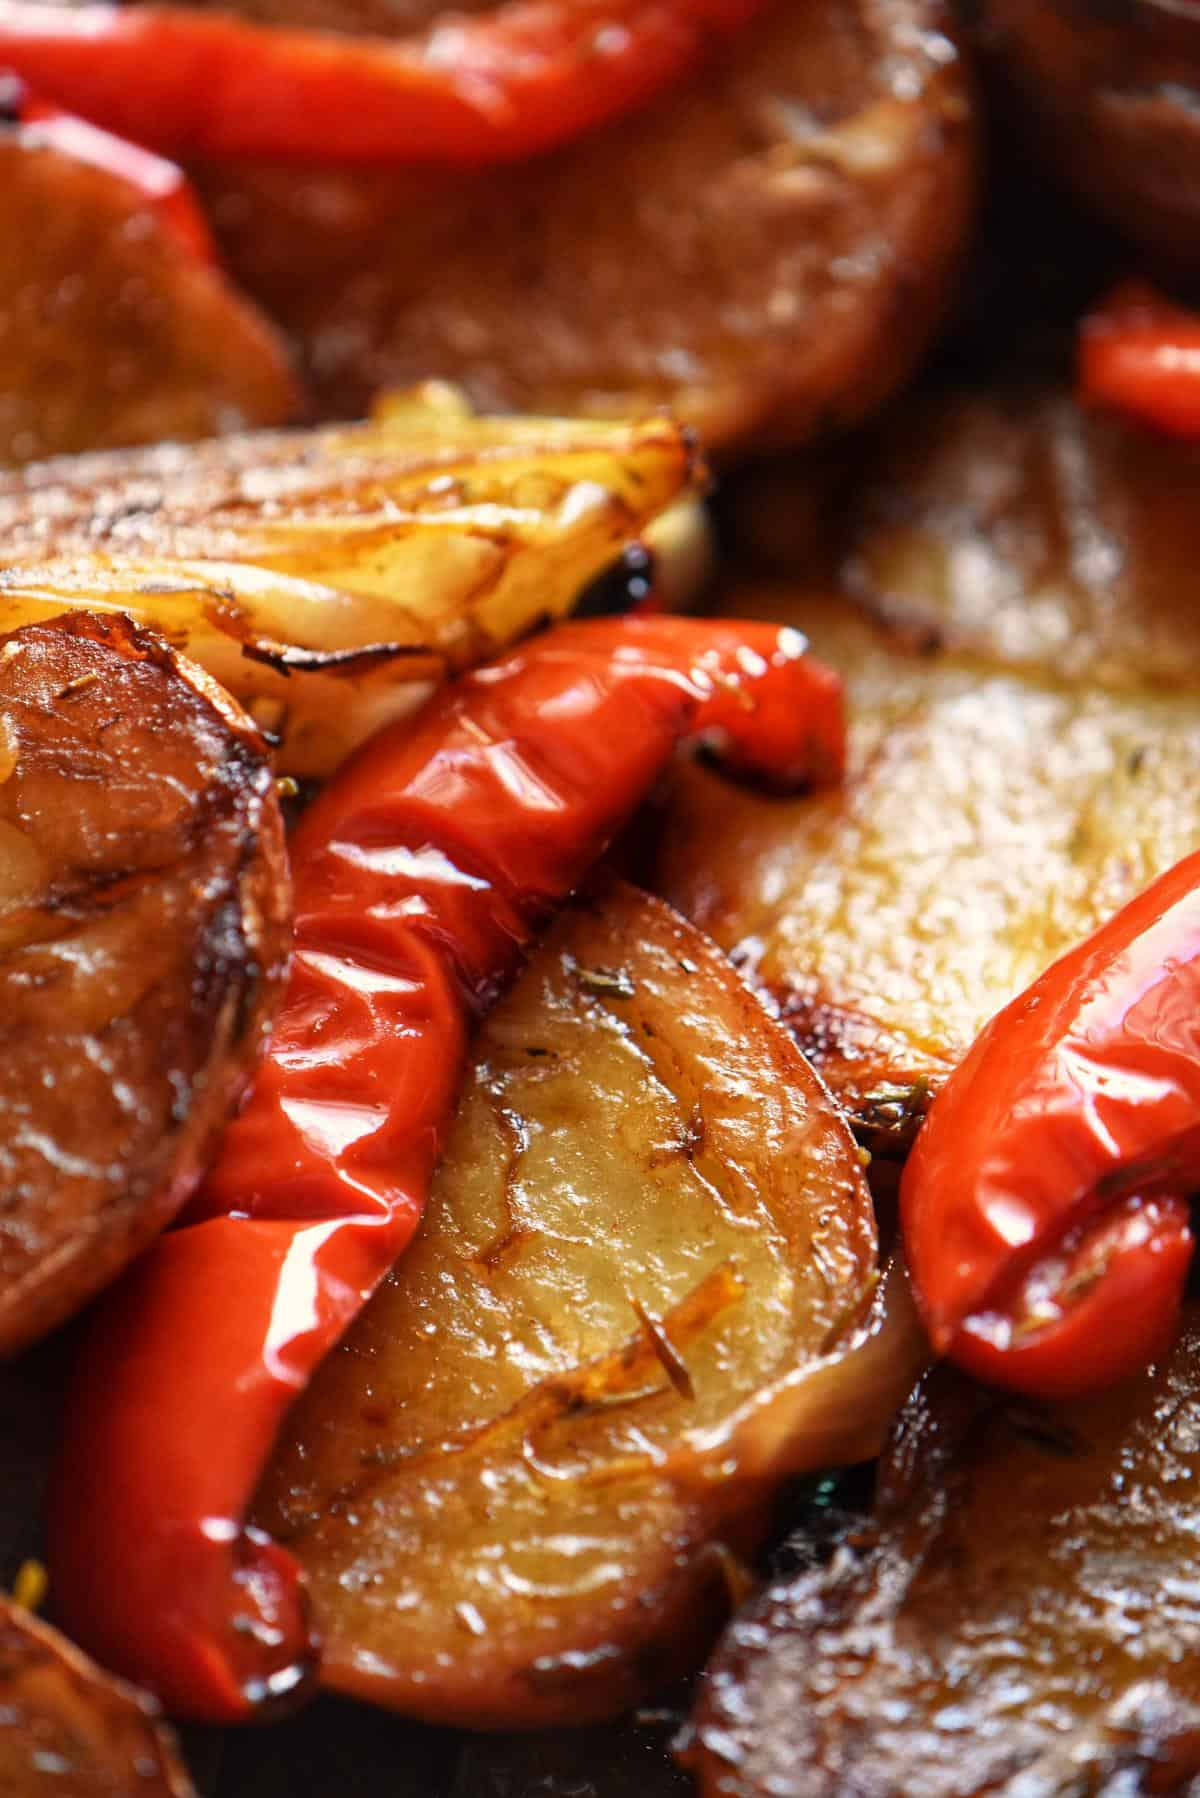 Roasted potatoes and red bell peppers in a baking dish.